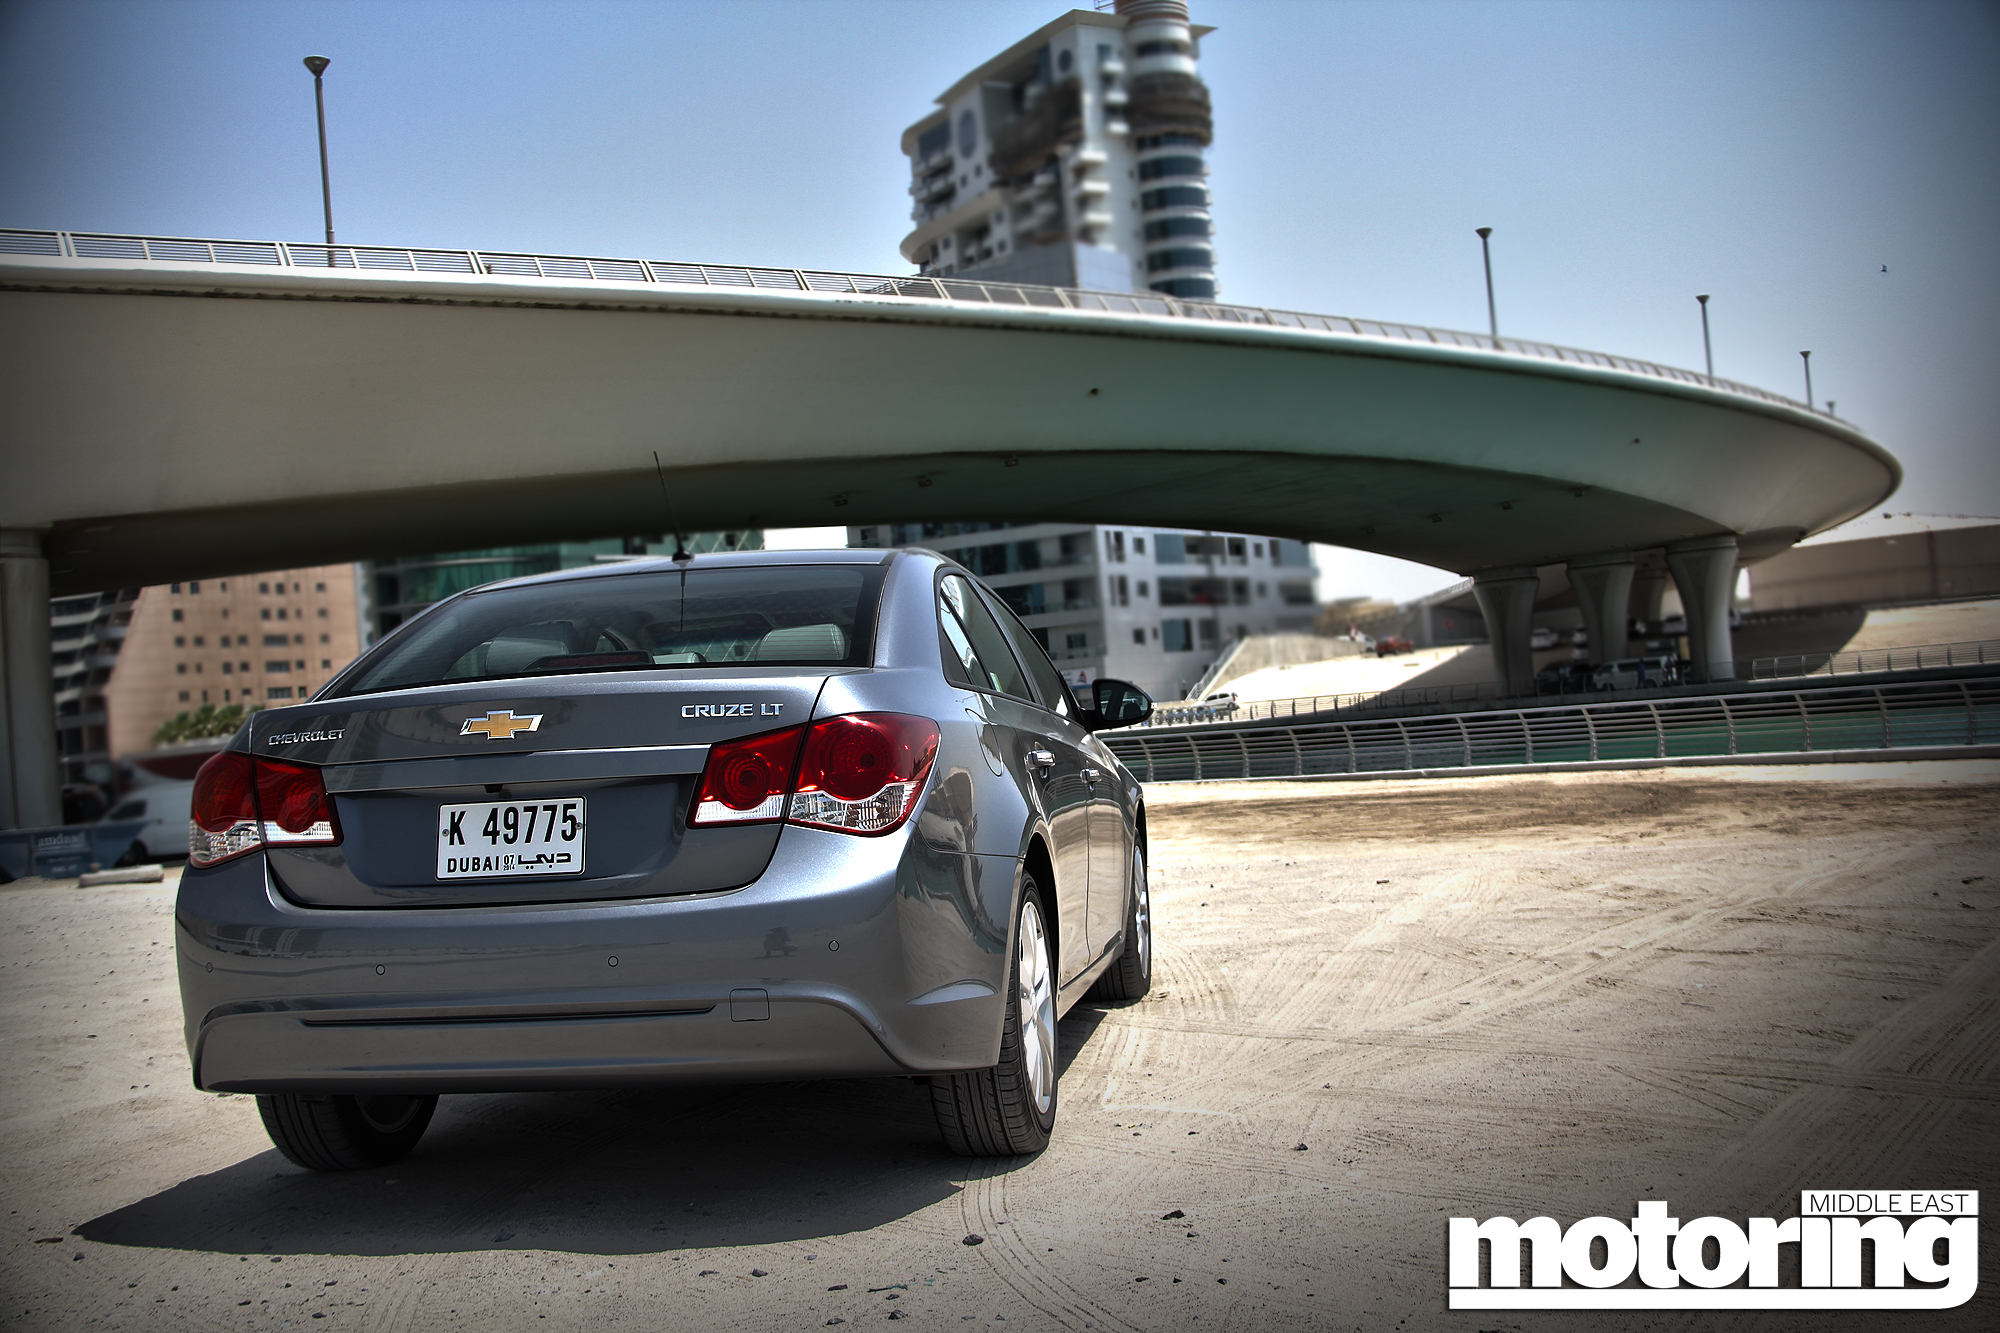 2013 Chevrolet Cruze Review Motoring Middle East Car News